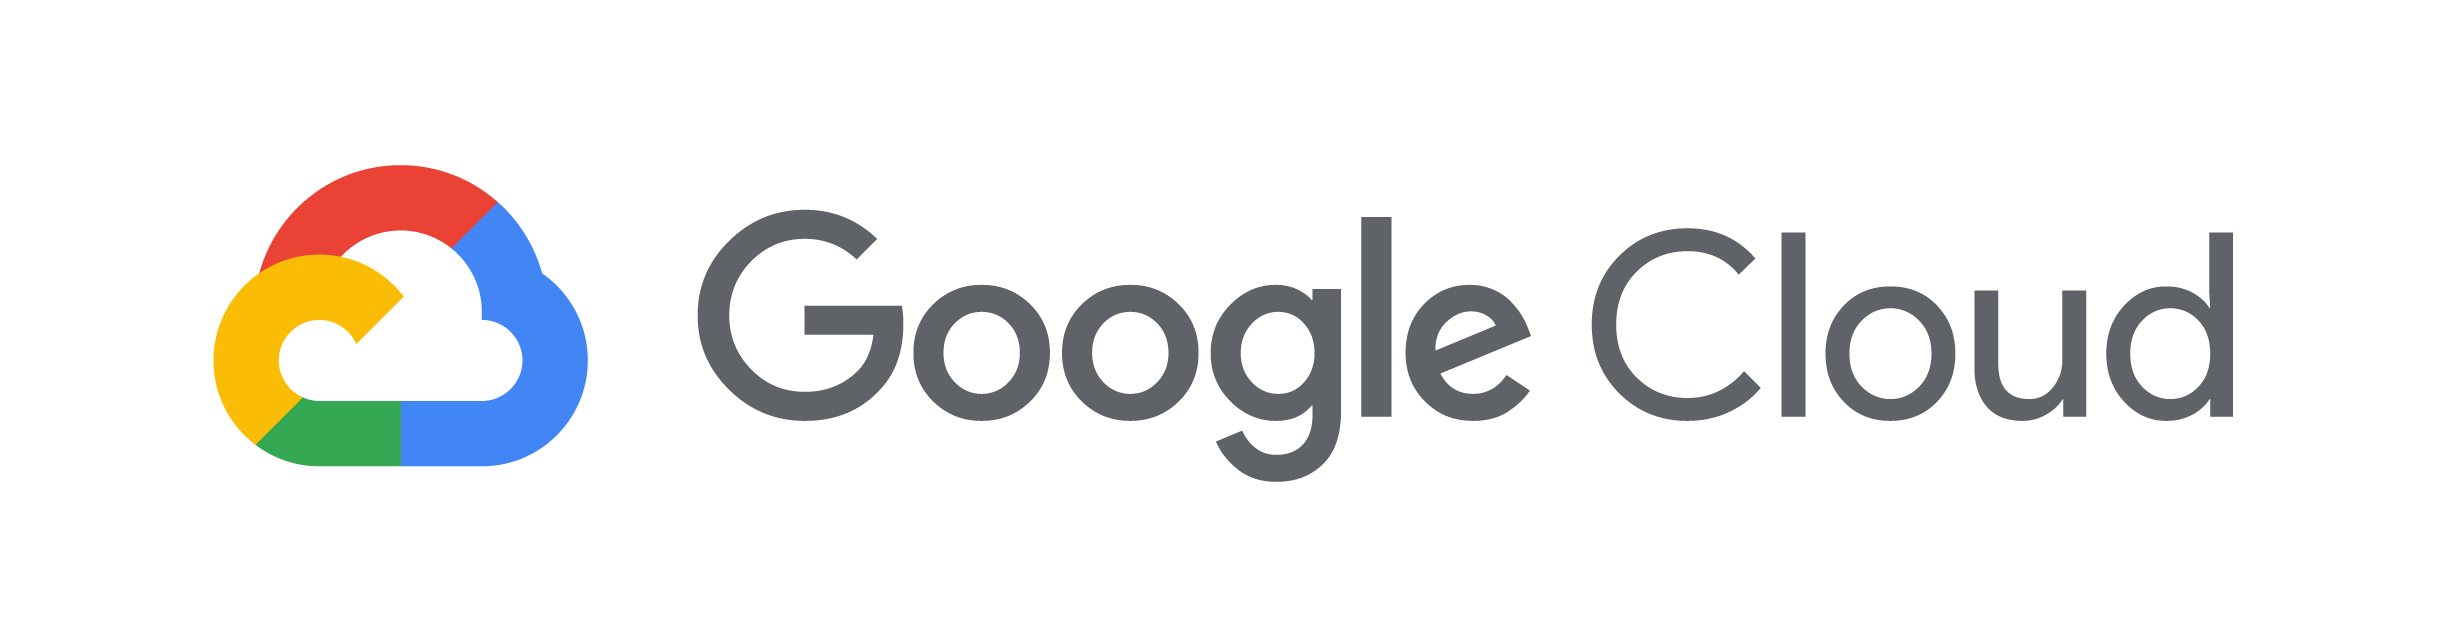 logo_Google Cloud_lockup_horiz (002).png